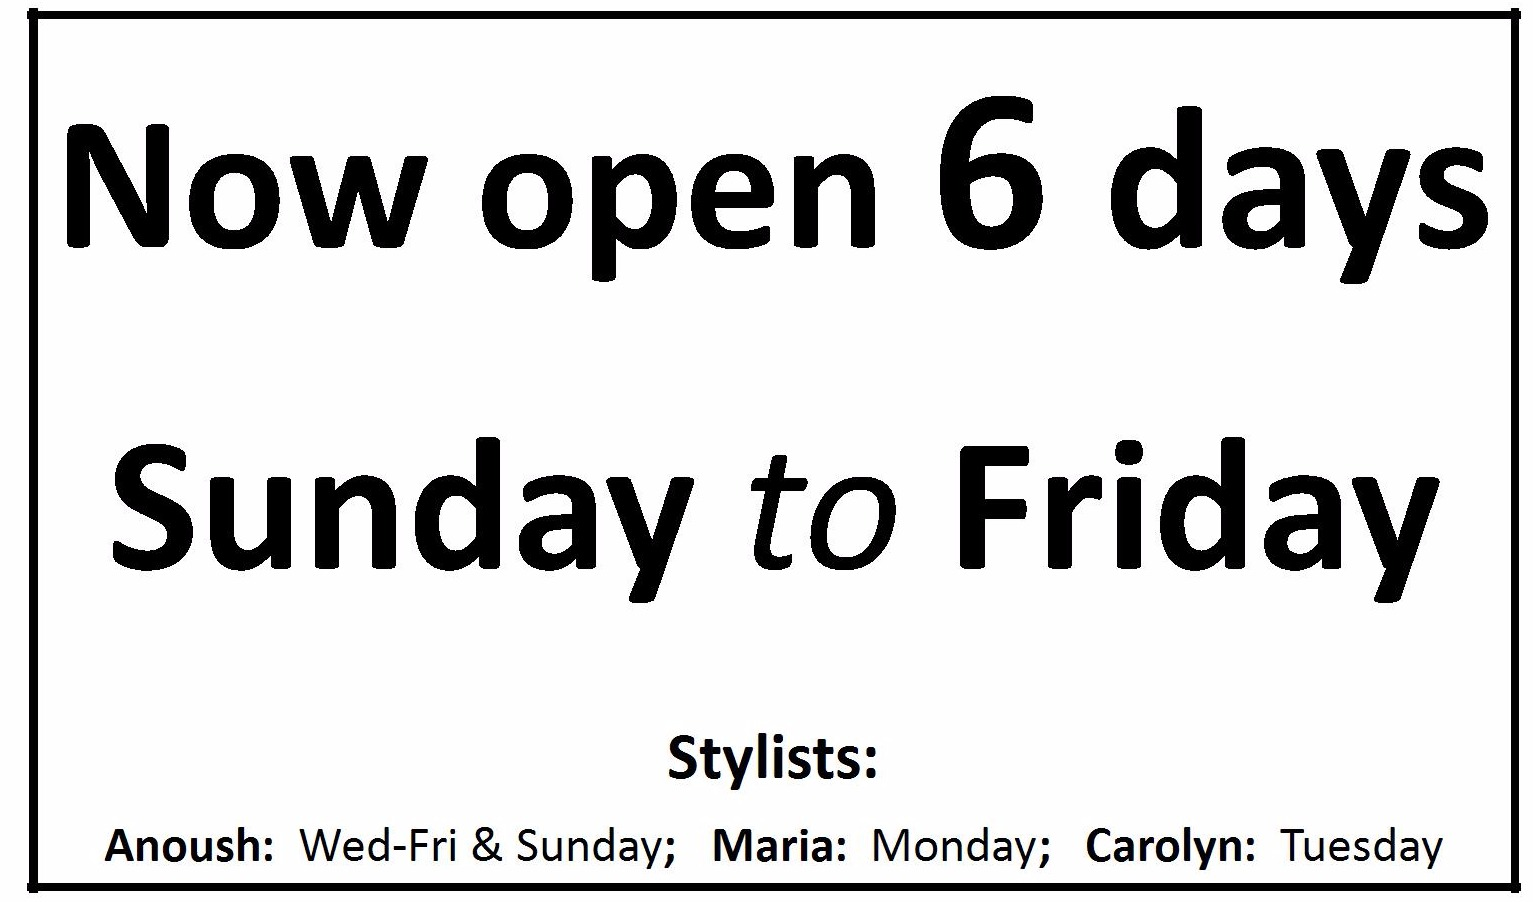 Now open 6 days!